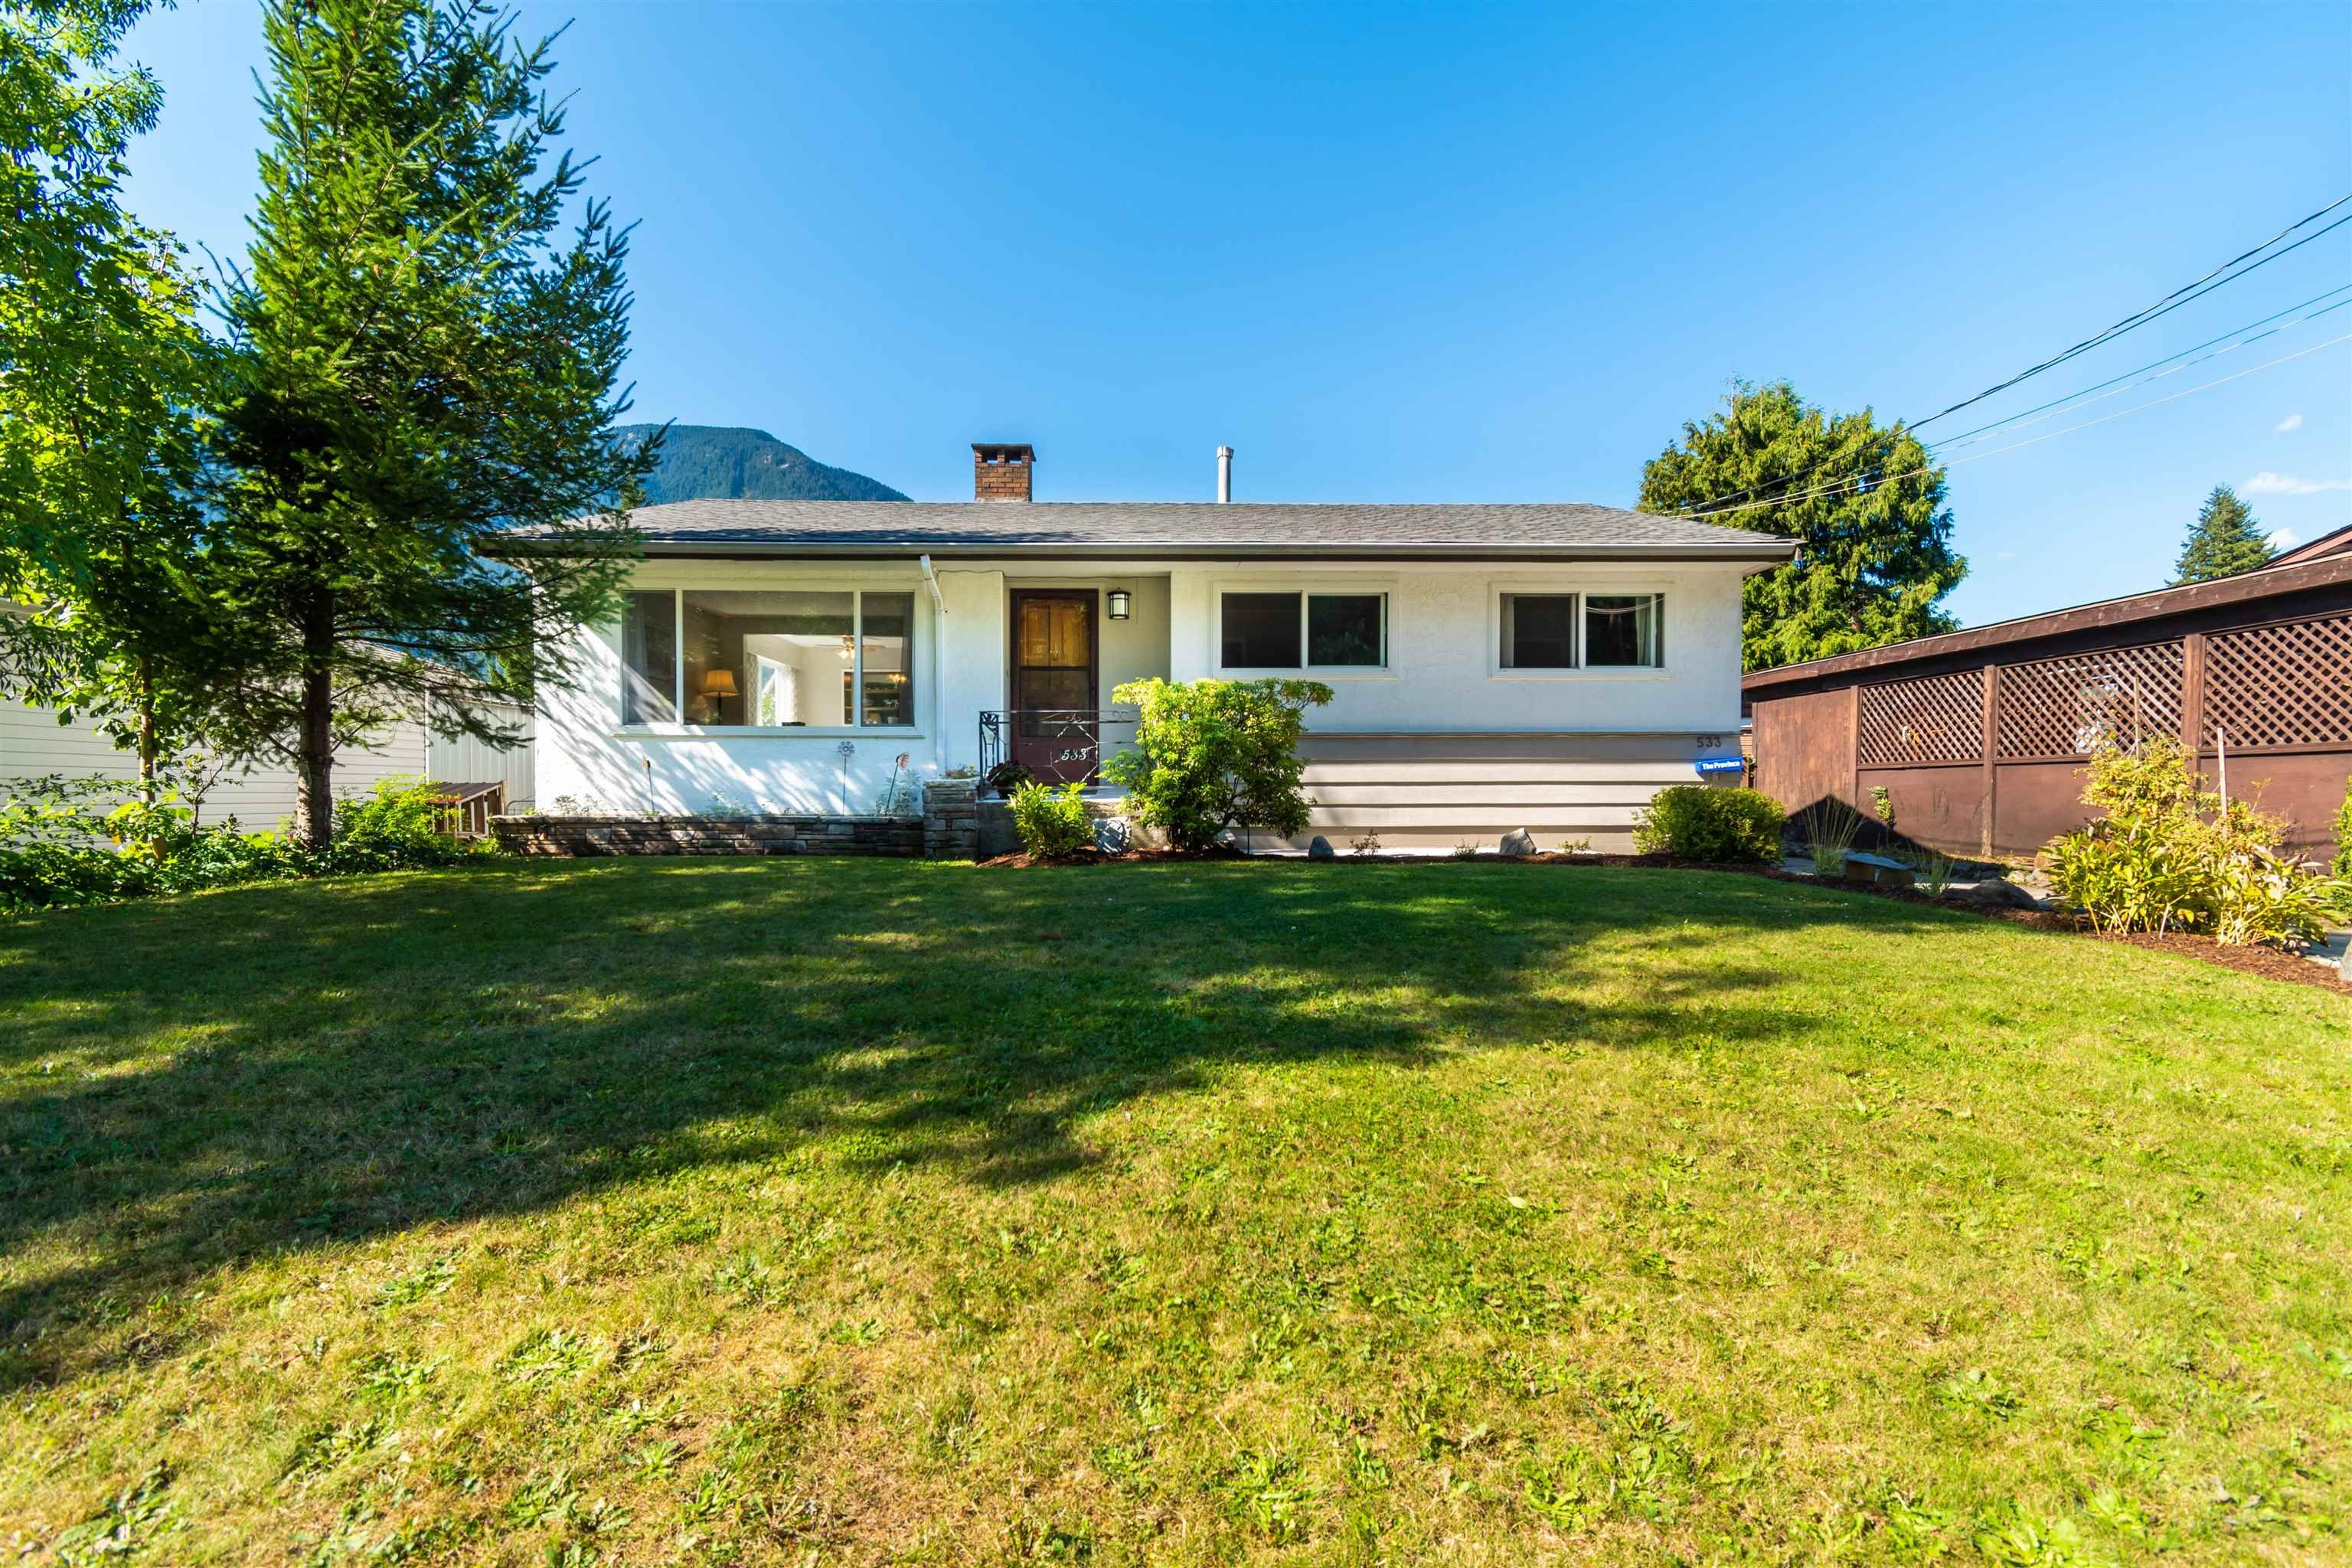 Main Photo: 533 KING Street in Hope: Hope Center House for sale : MLS®# R2614349